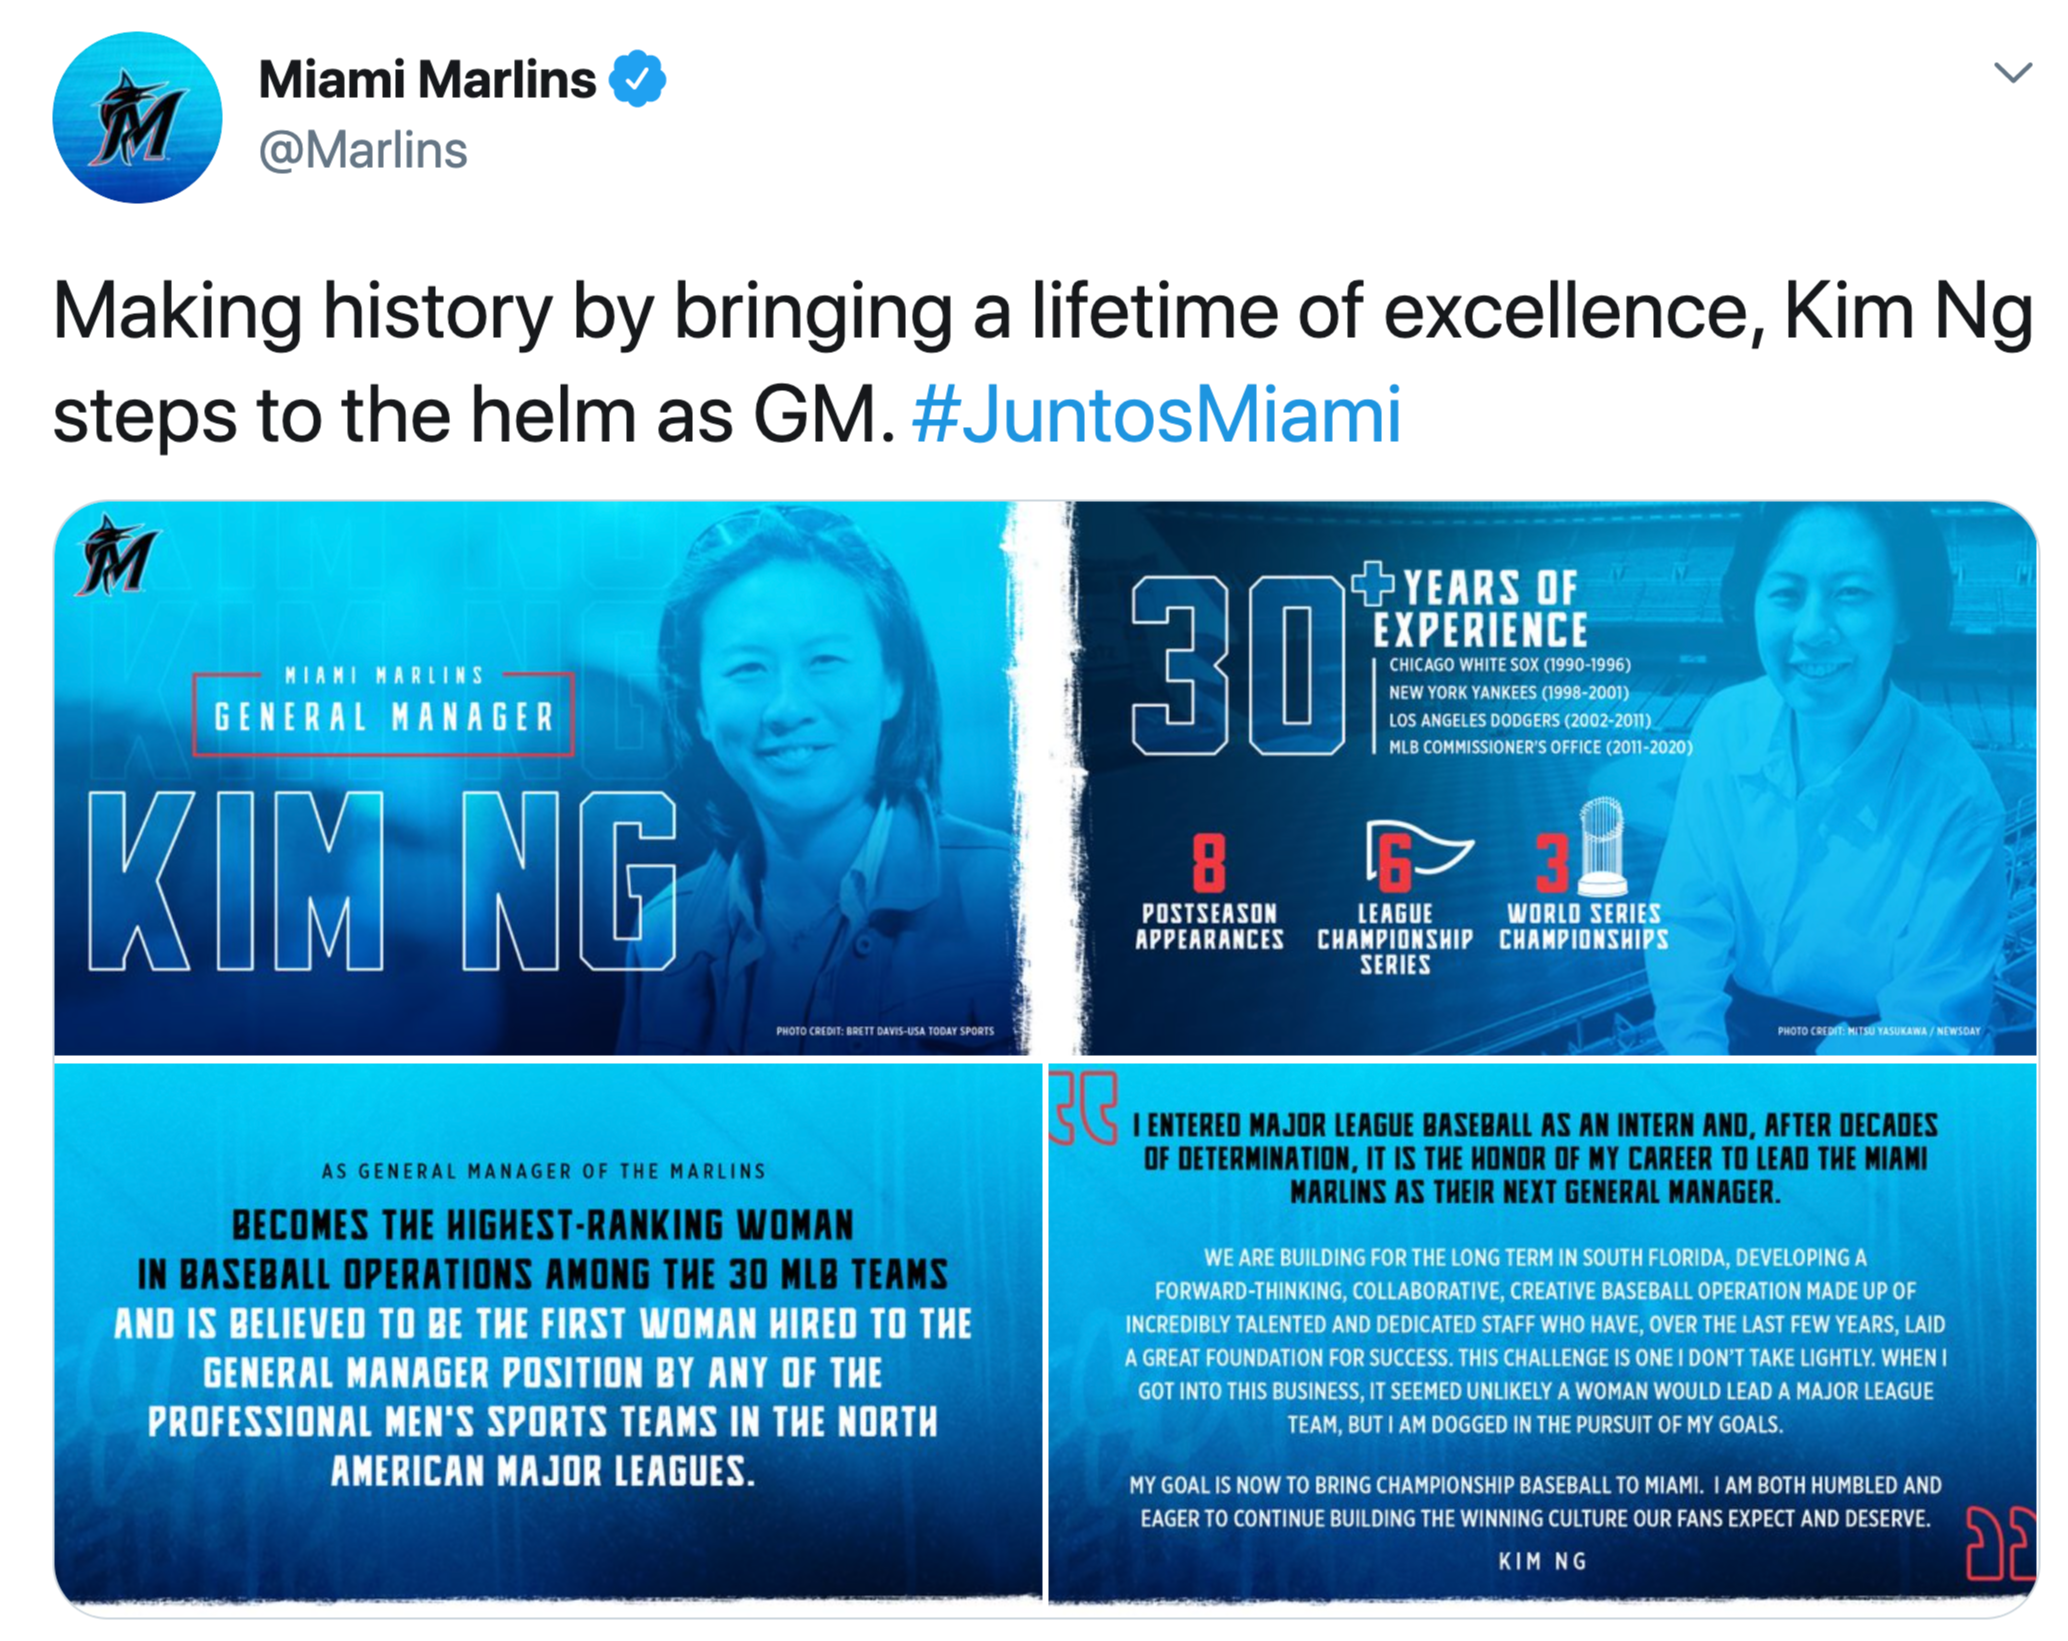 Miami Marlins @Marlins Making history by bringing a lifetime of excellence, Kim Ng steps to the helm as GM. #JuntosMiami